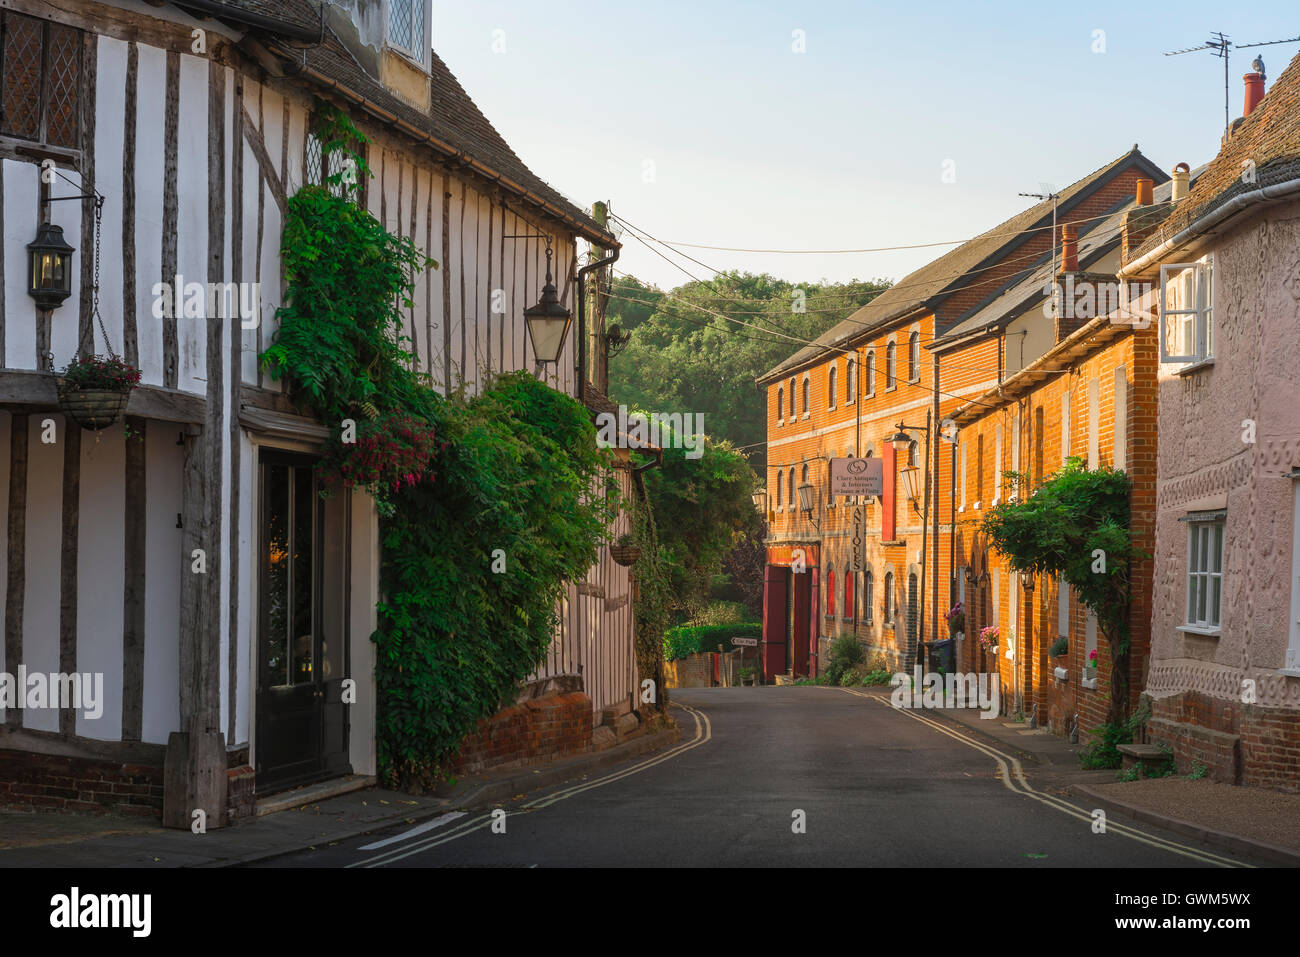 Clare Suffolk village street, medieval and 18th century buildings in Maltings Lane in the village of Clare, Babergh - Stock Image